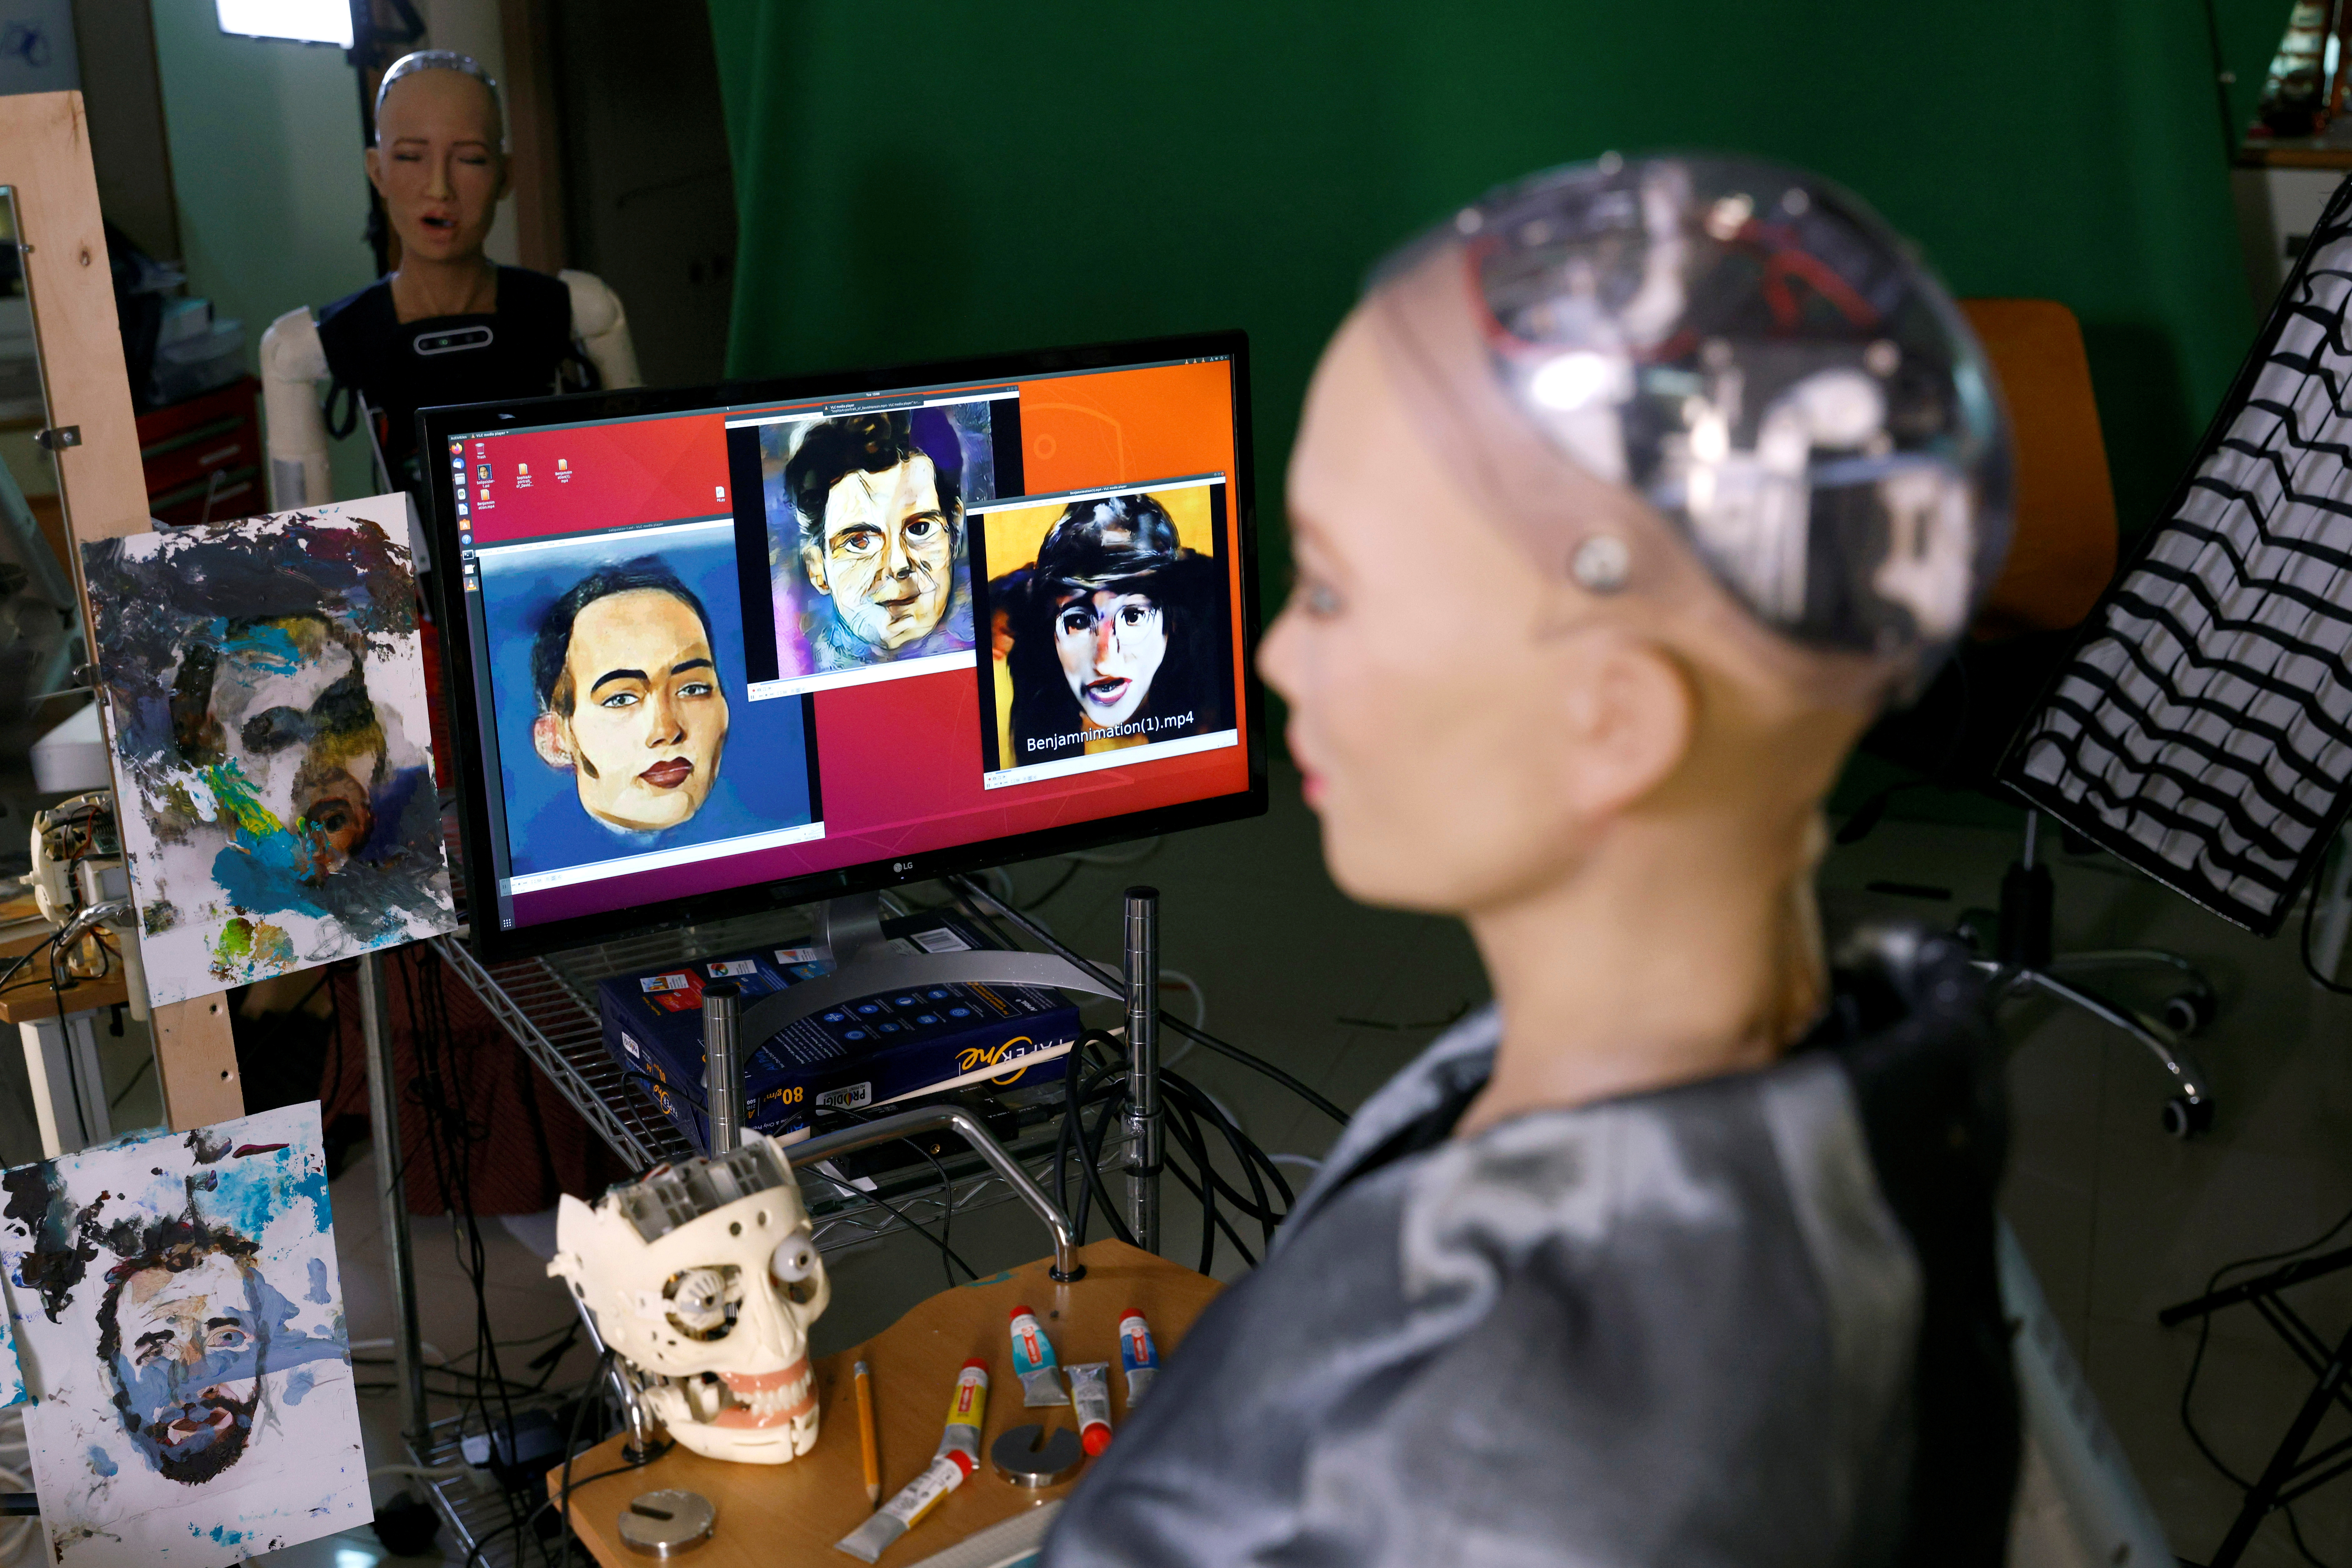 Sophia the humanoid robot, developed by Hanson Robotics, looks at paintings at her studio before auctioning her own non-fungible token (NFT) artwork, in Hong Kong, China March 16, 2021. REUTERS/Tyrone Siu